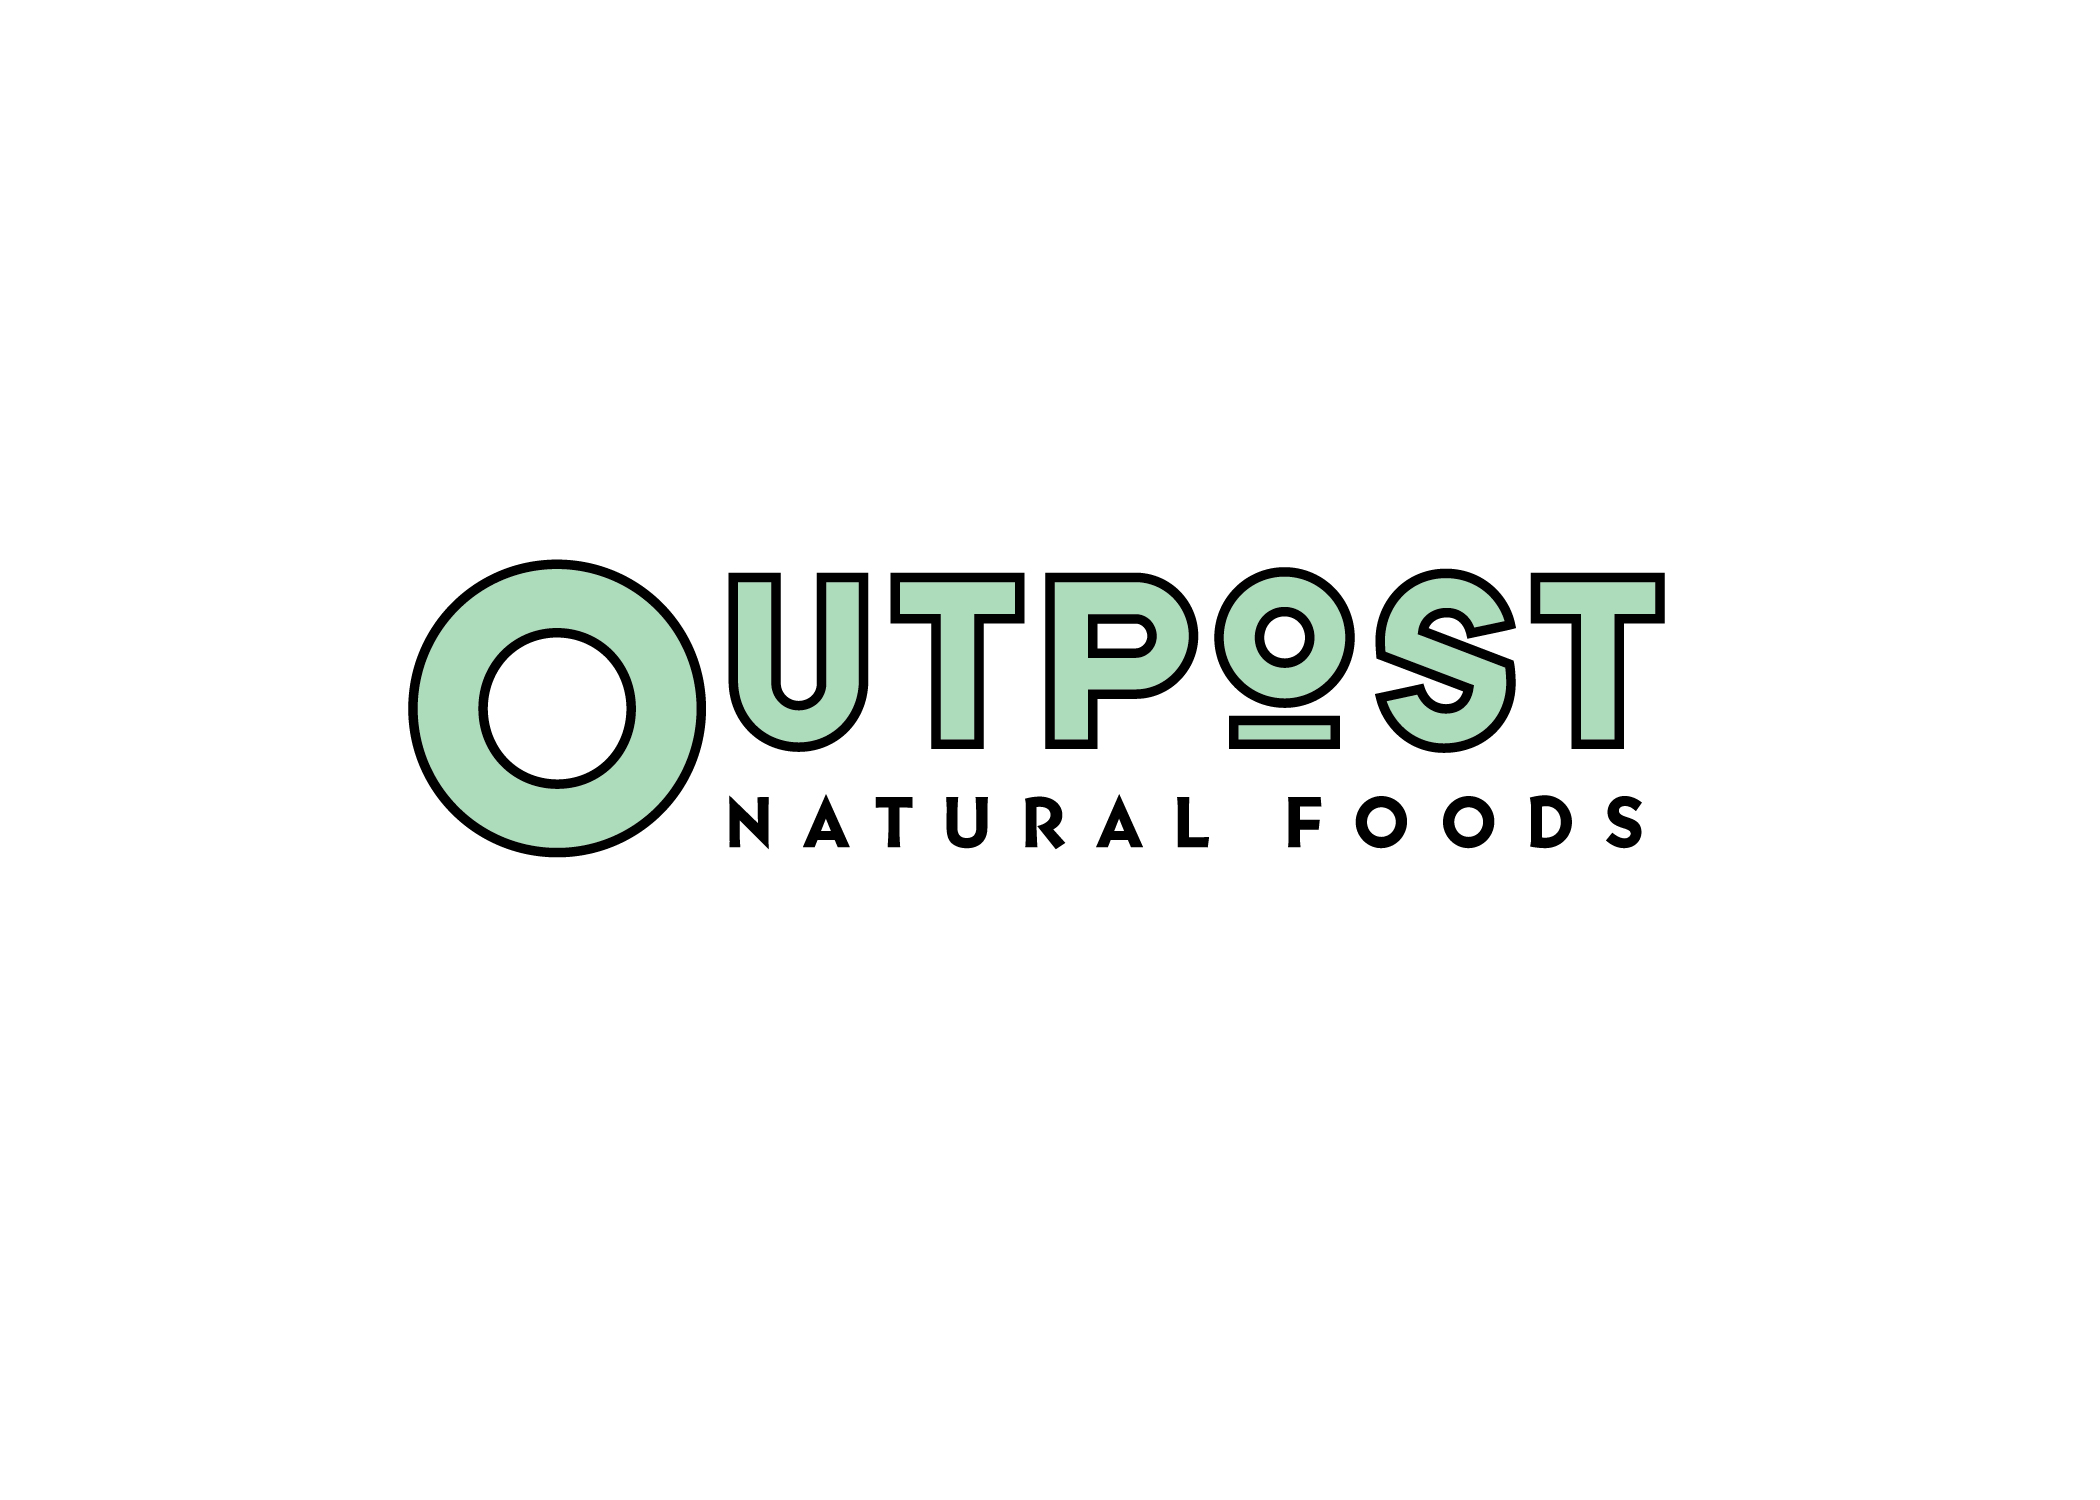 Outpost Natural Food Cooperative